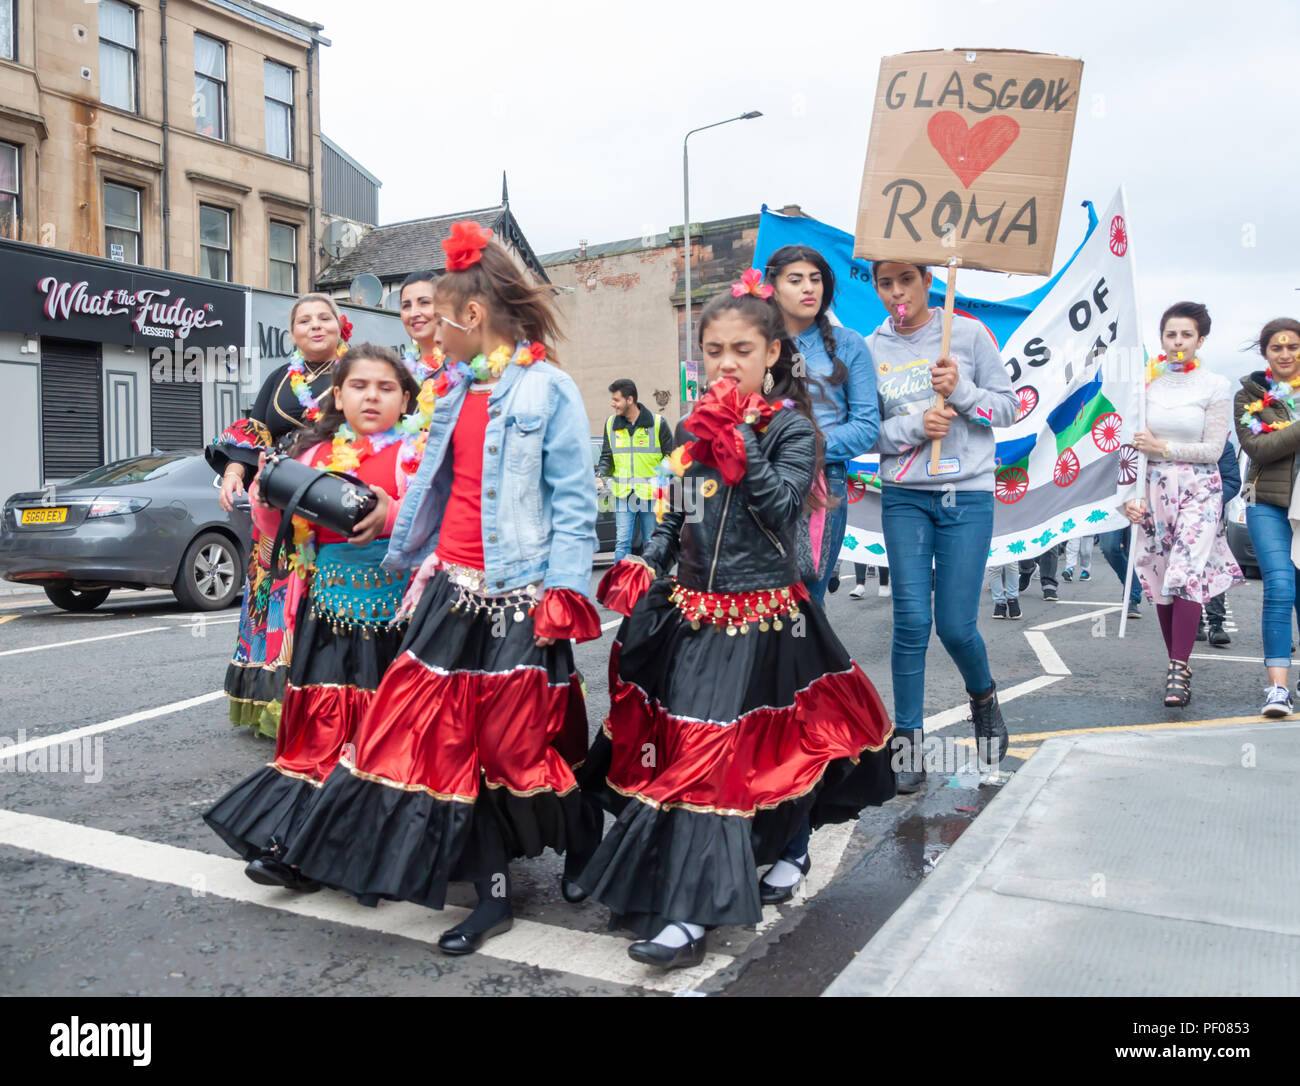 Glasgow, Scotland, UK. 18th August, 2018. Girls from the Roma Community in the parade of the Govanhill International Festival & Carnival. This year's parade includes community groups, a pipe band, drummers, dancers, jugglers, roller skaters and a brass band all starting at Govanhill Park and travelling through the streets of Govanhill finishing at the Queen's Park Arena. Credit: Skully/Alamy Live News - Stock Image